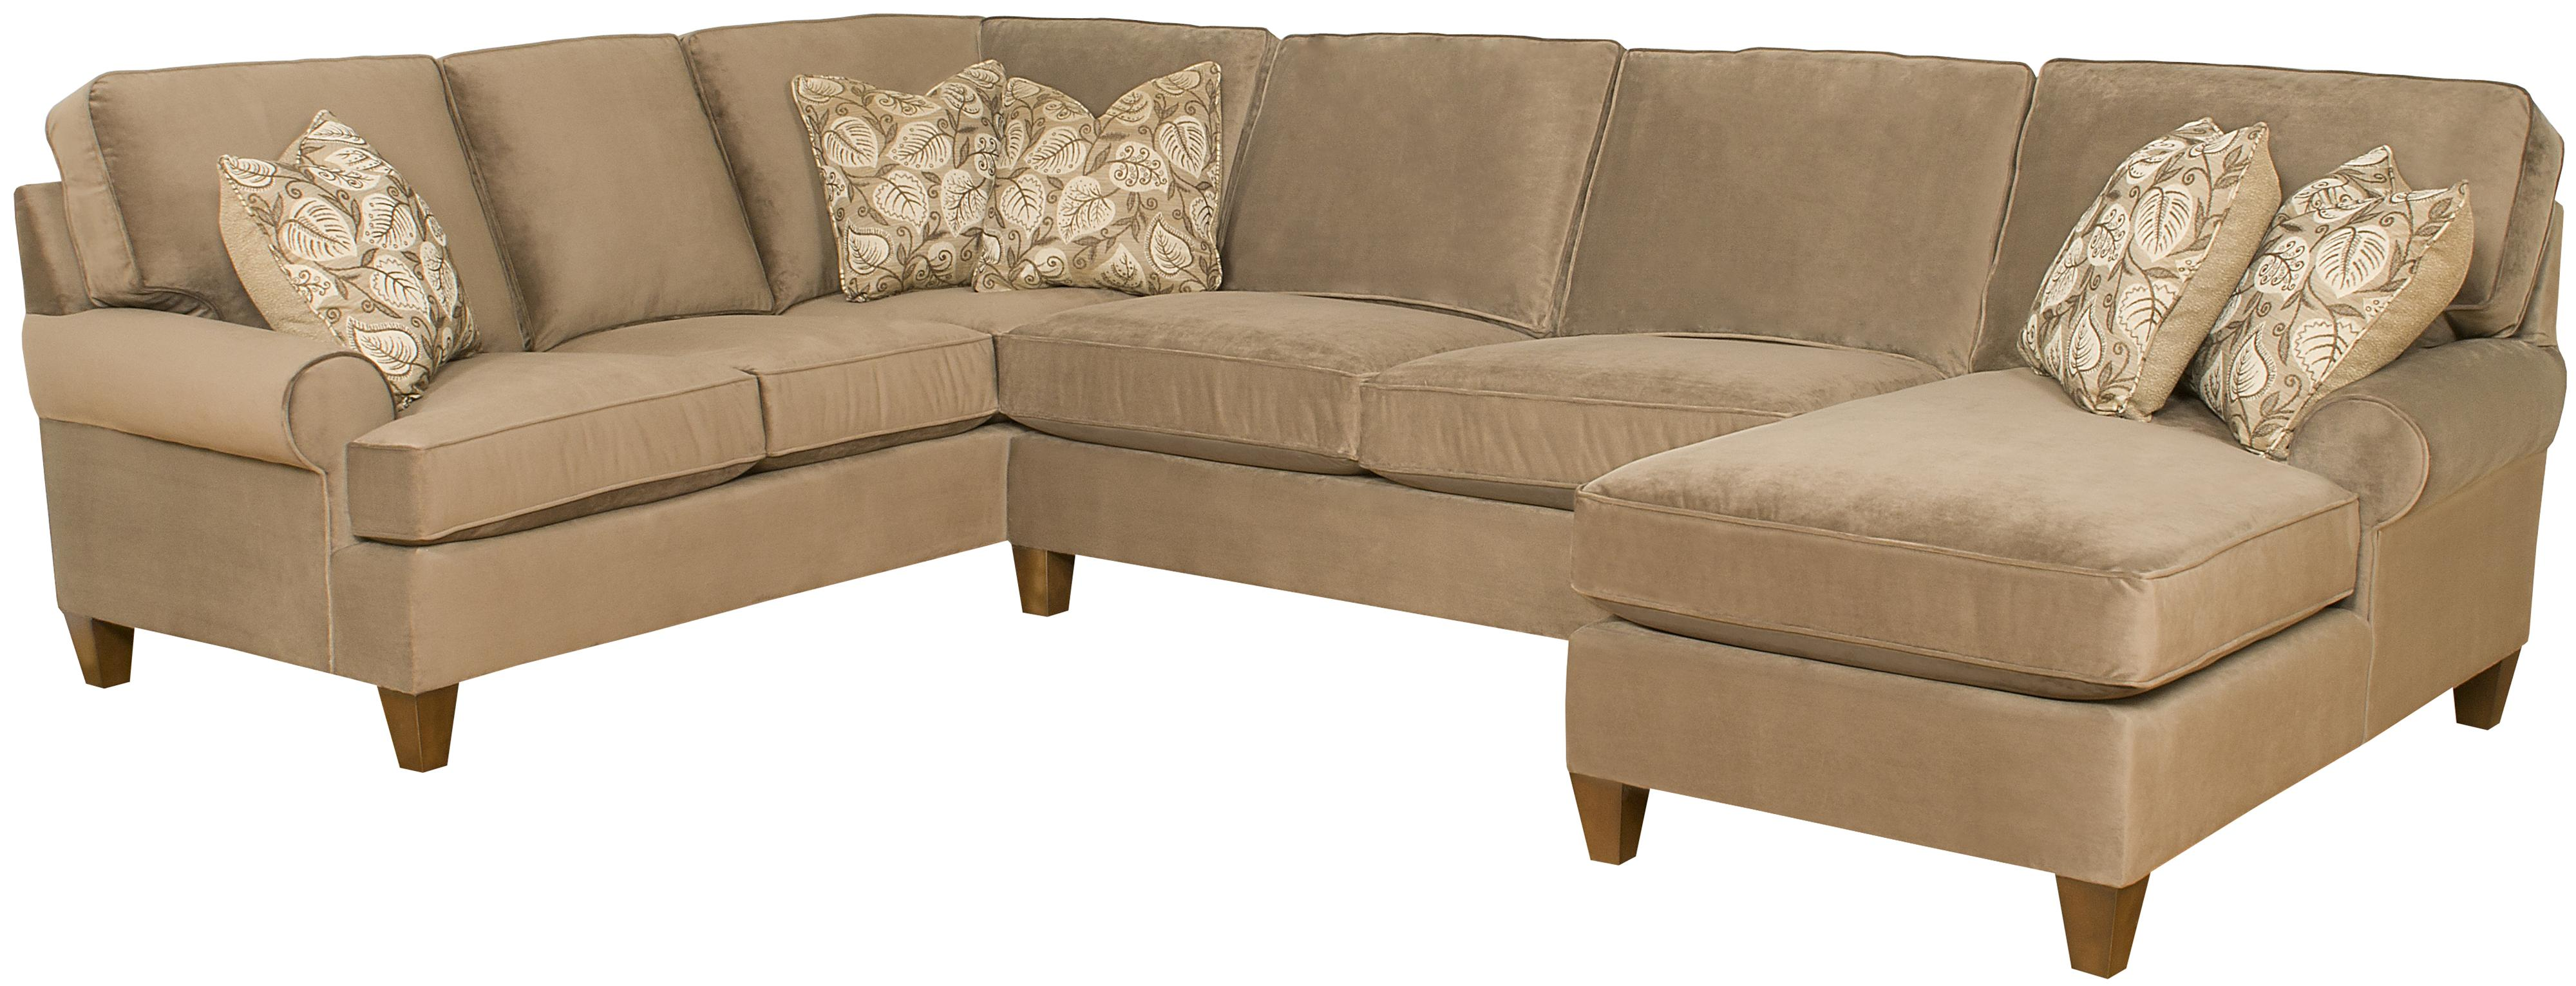 King Hickory Chatham Customizable 3 Piece Sectional Sofa With Sock Arms And Tapered Feet Story Lee Furniture Sofas